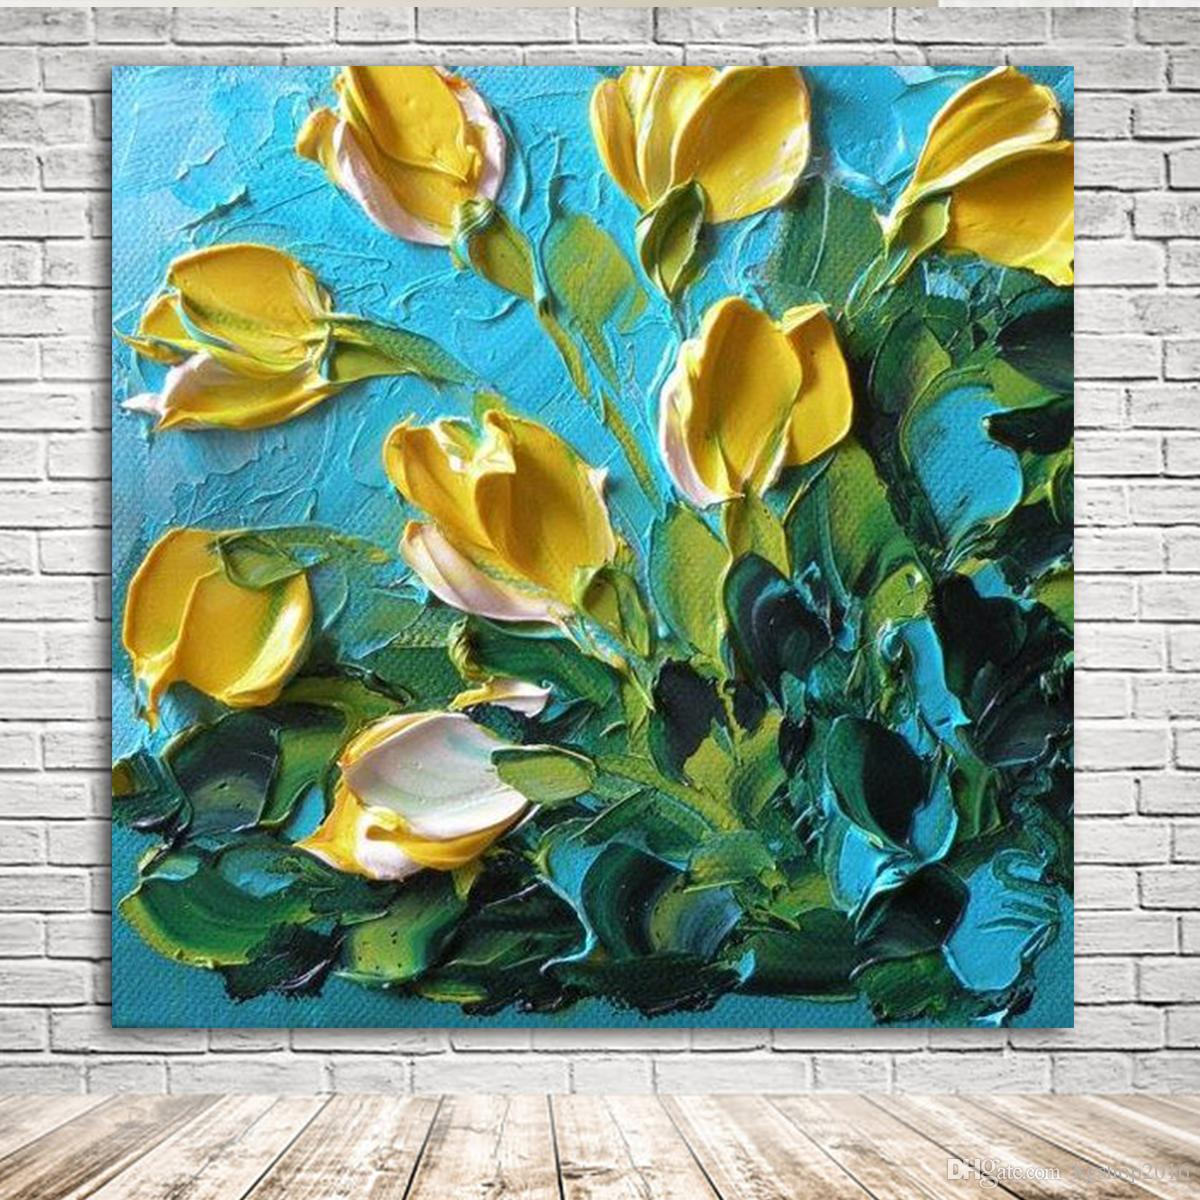 KGTECH 3D Thick Texured Acrylic Painting Yellow Tulip Flowers Wall Art  Handmade Florals Artworks Large 40 Inch Acrylic Painting Tulip Flowers Wall  Art ...